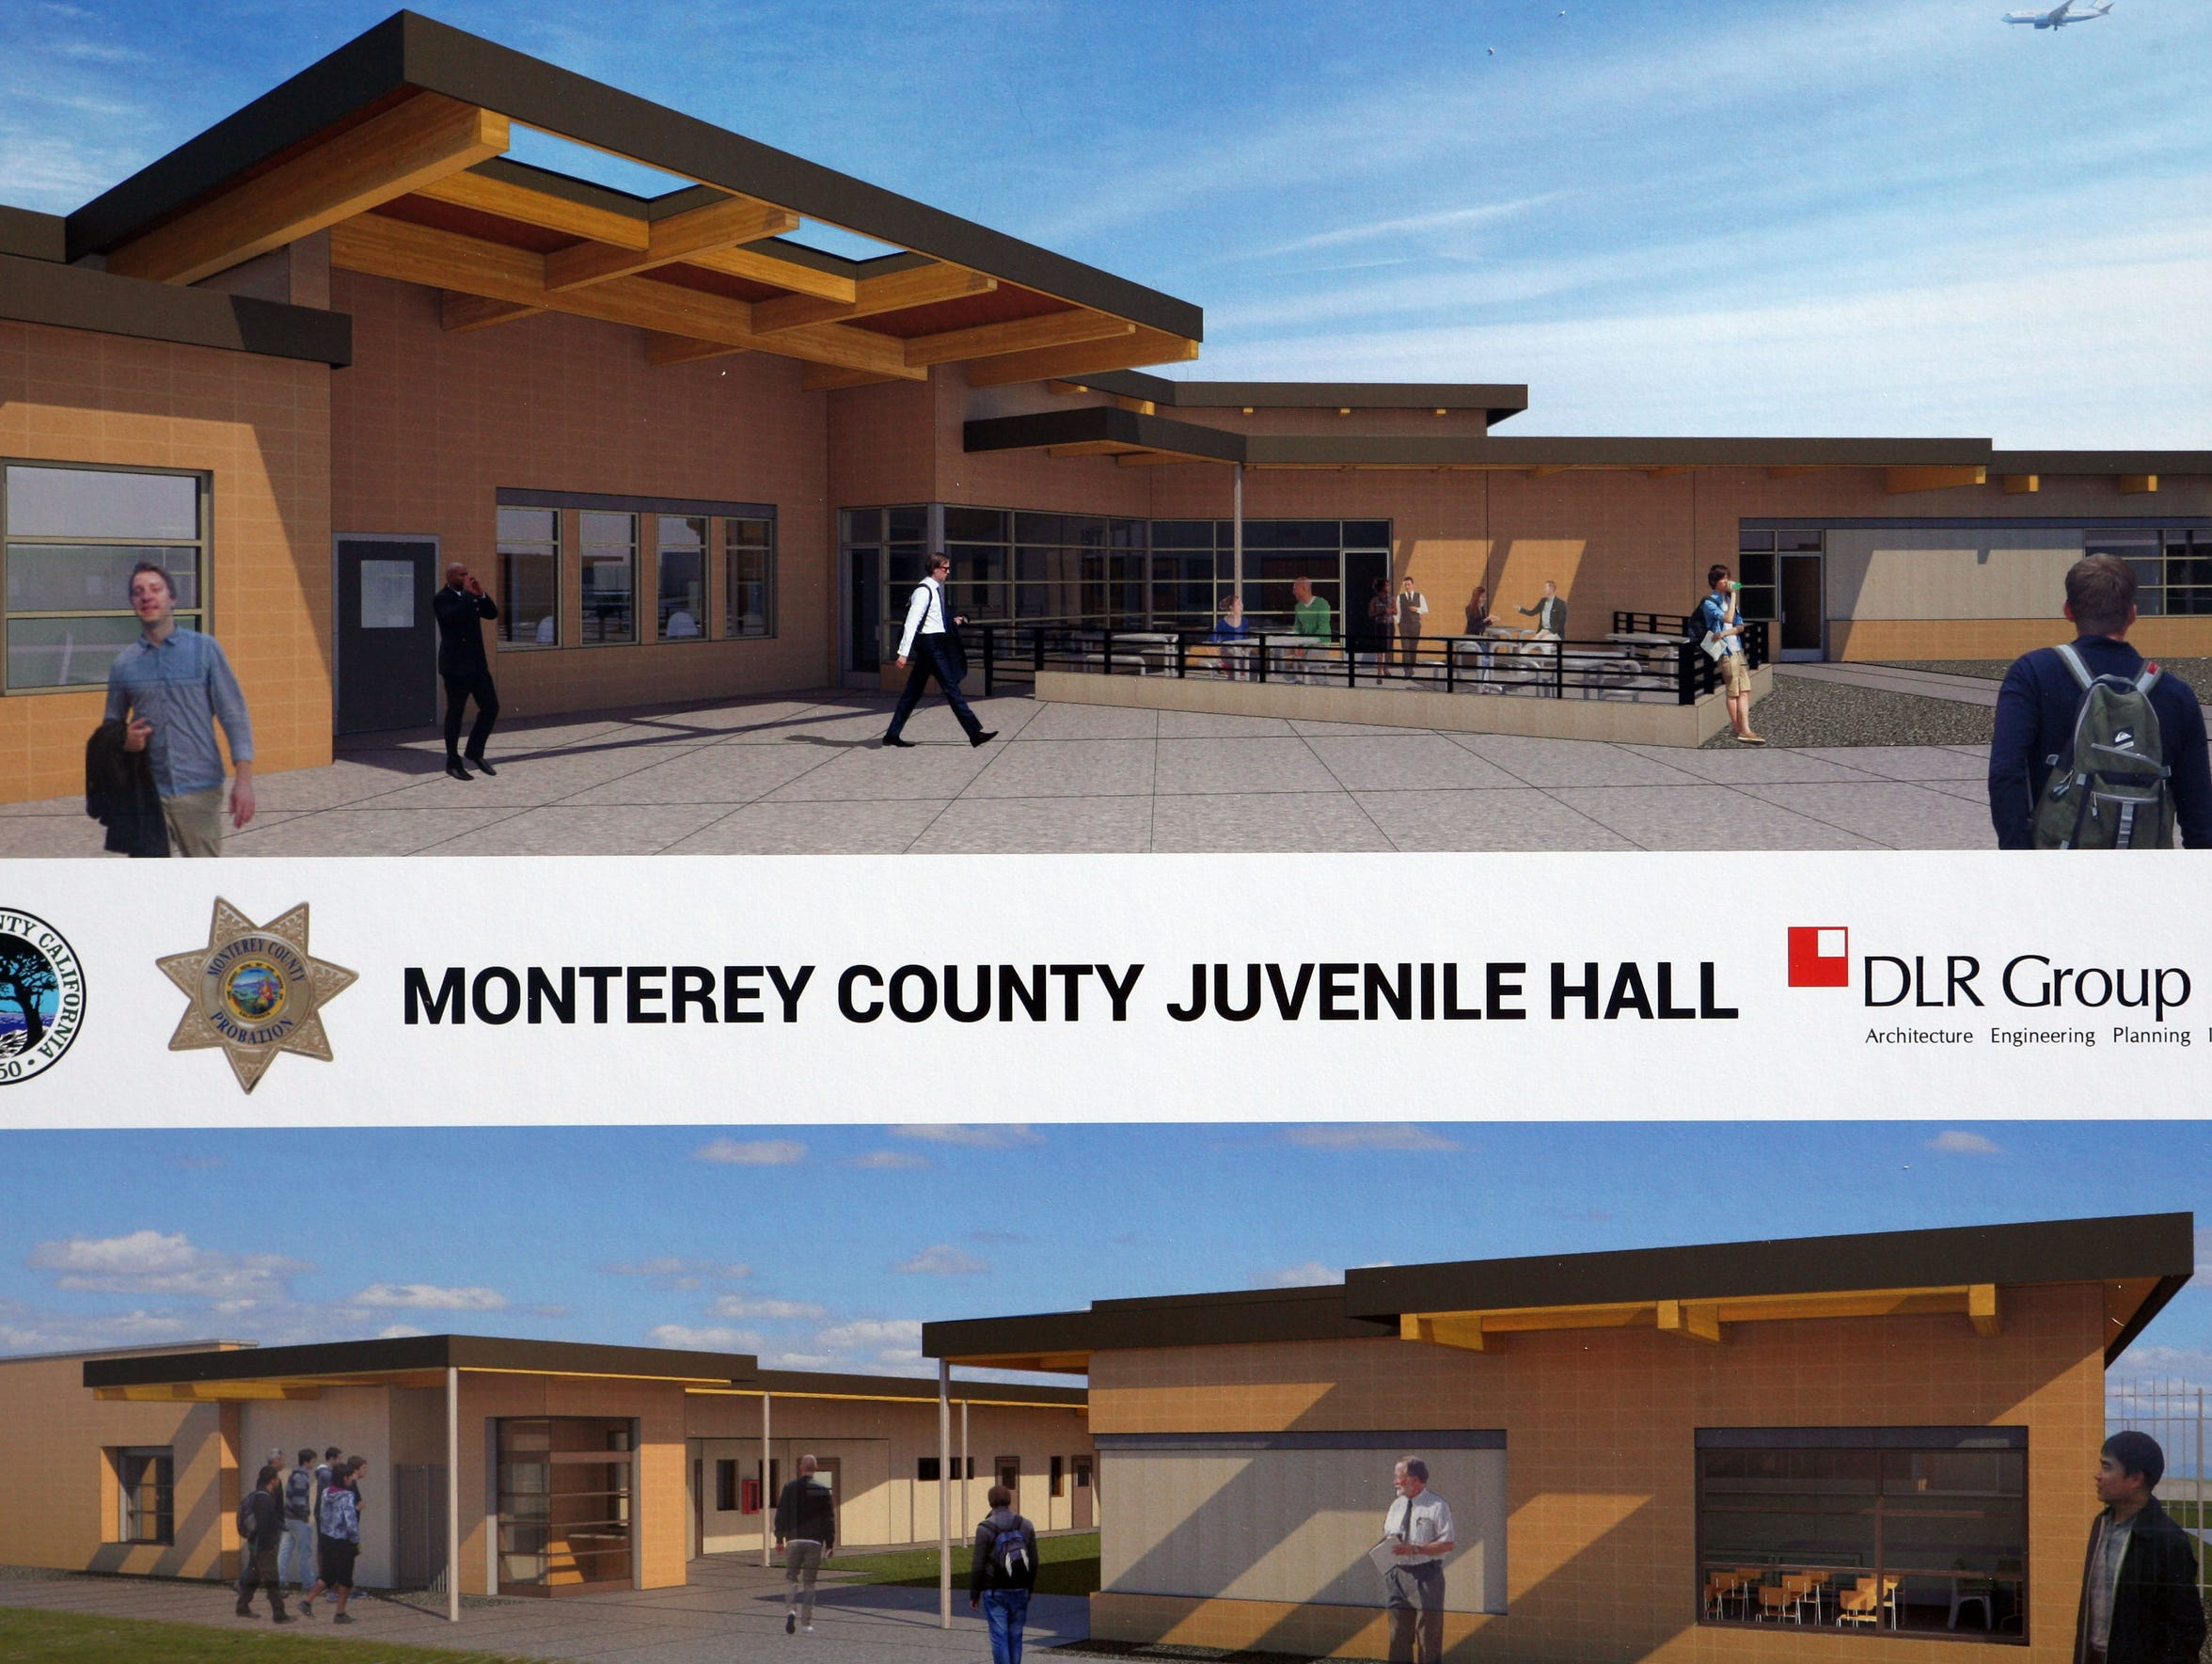 Groundbreaking at the site of Monterey County's new